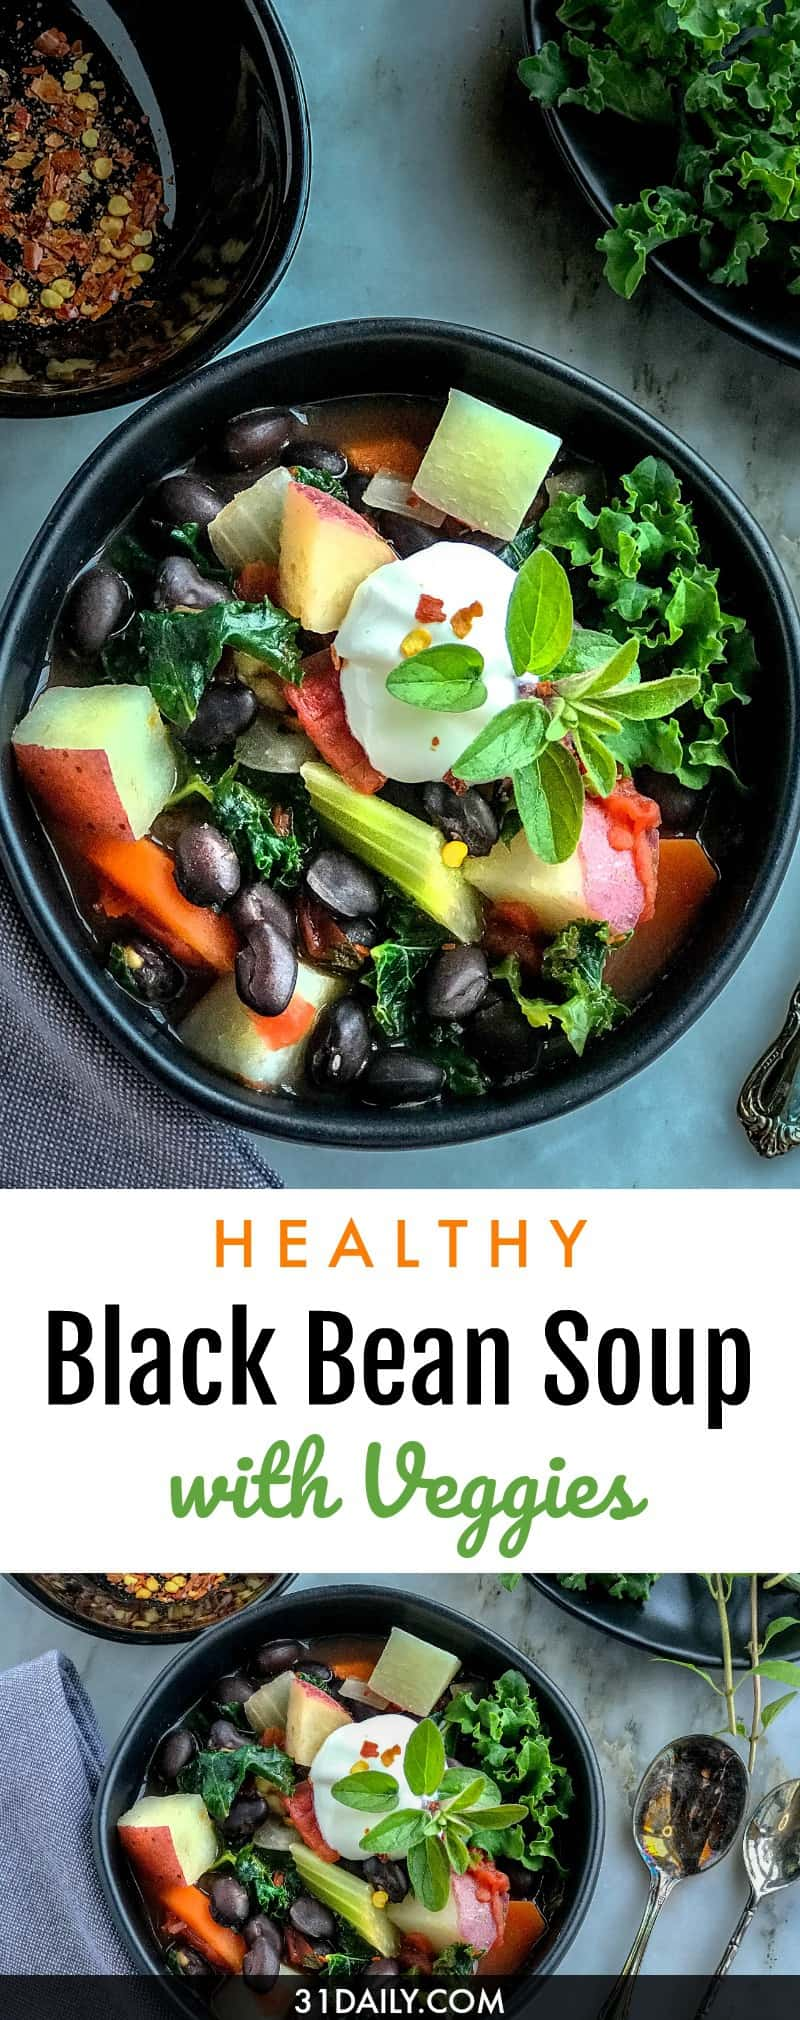 Easy, Chunky and Hearty Black Bean Soup with Vegetables | 31Daily.com